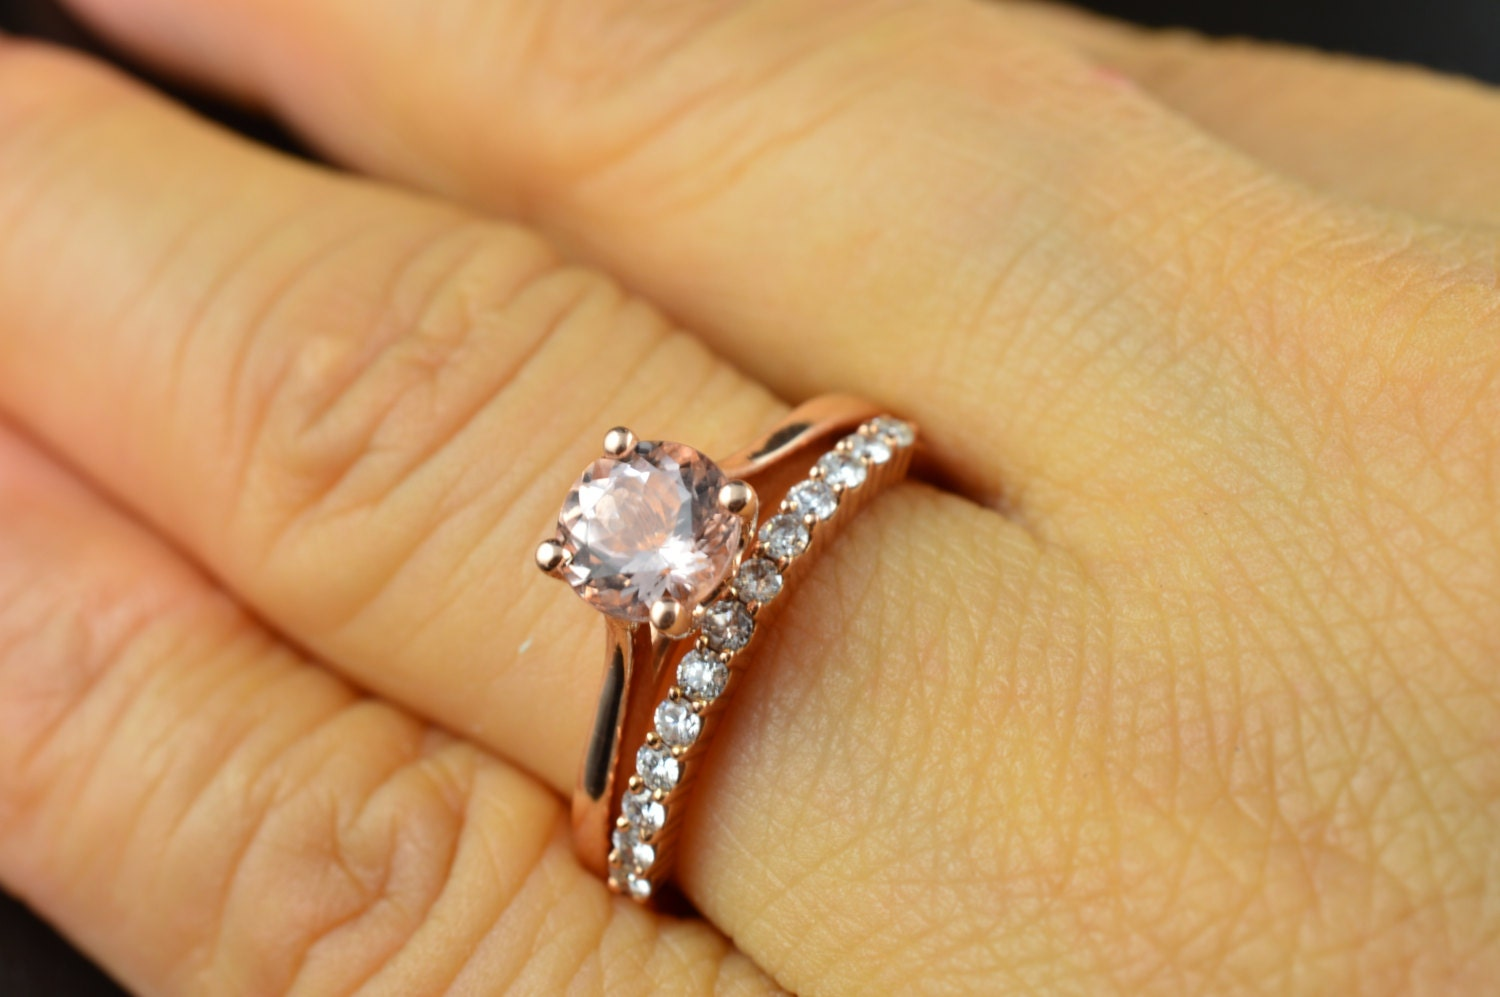 emma ruth & petite ashley set morganite engagement ring in